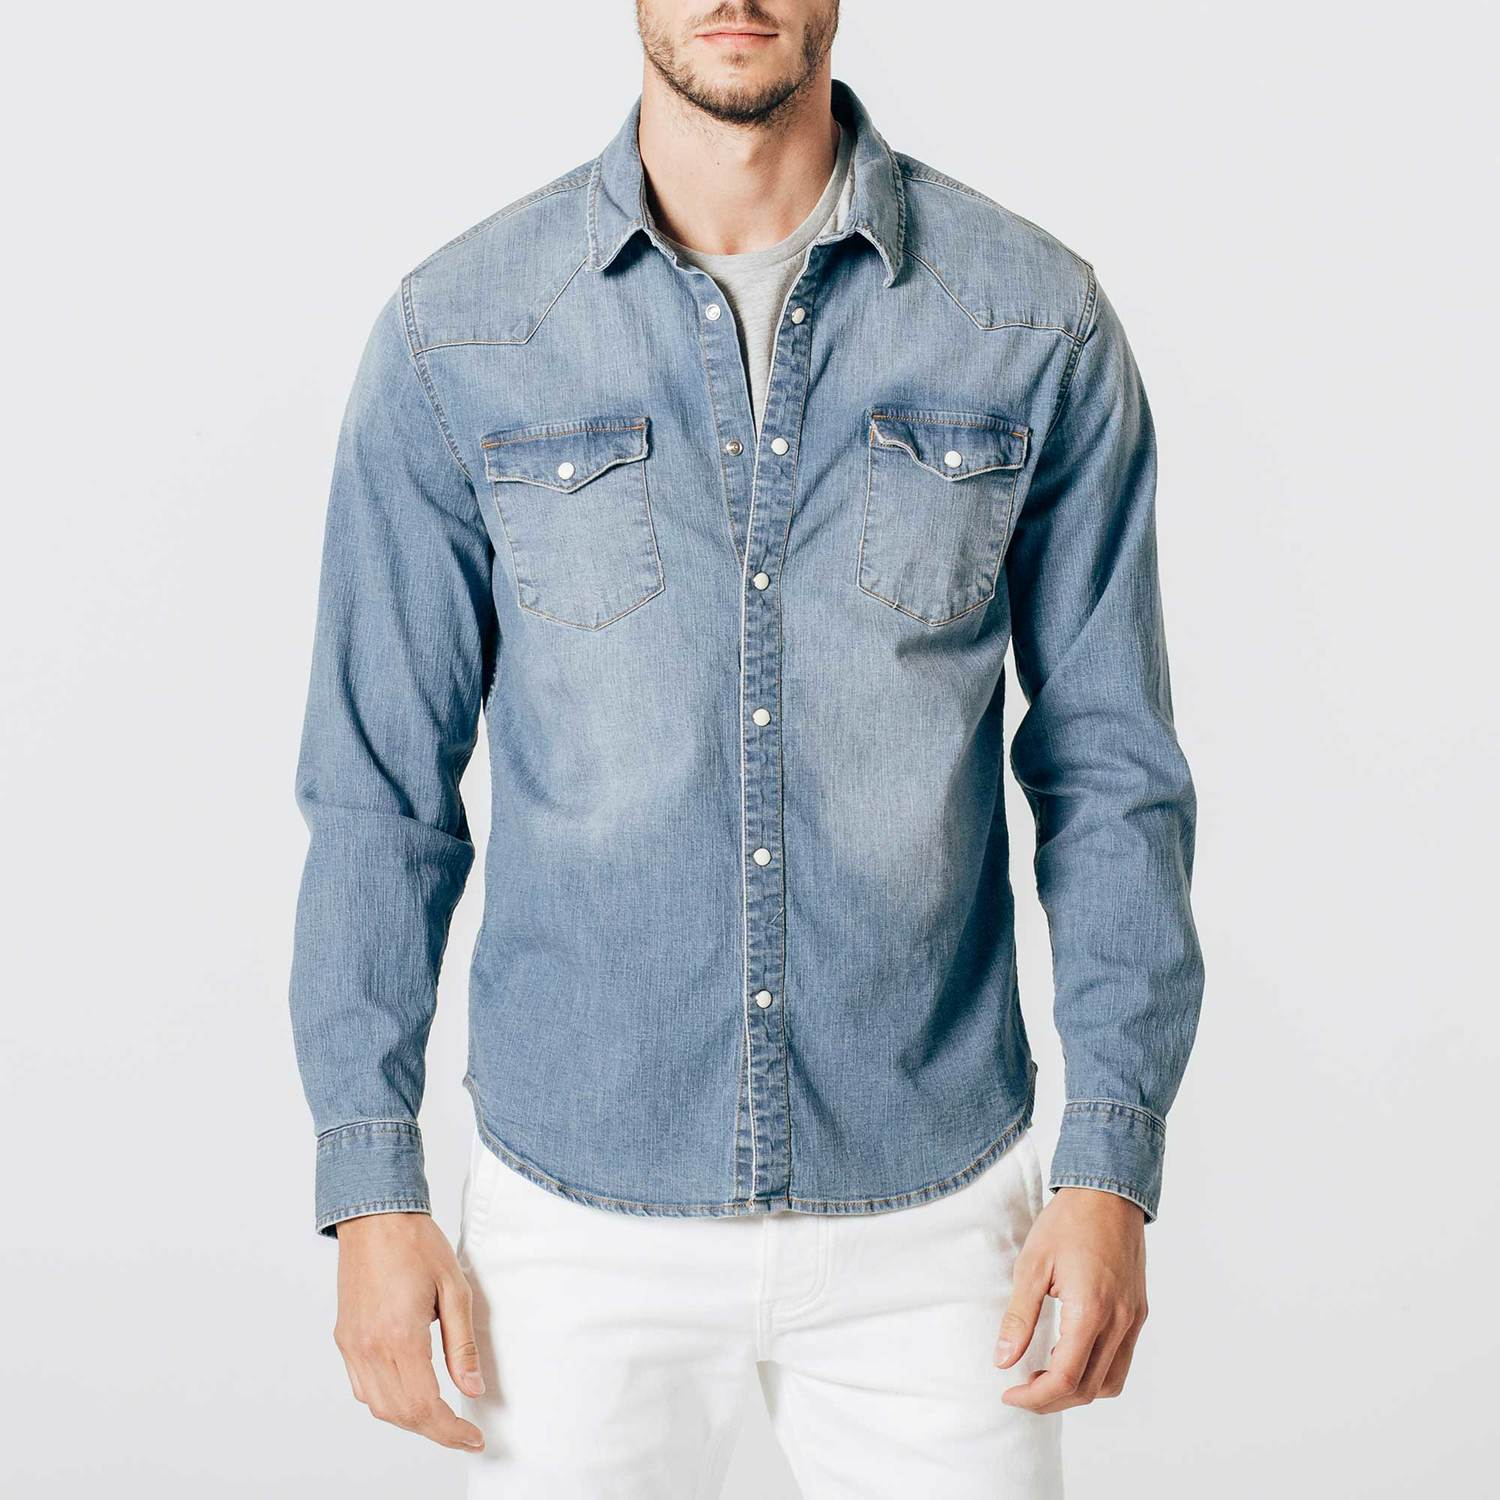 Mens Snap Button Down Denim Shirt in Light Wash